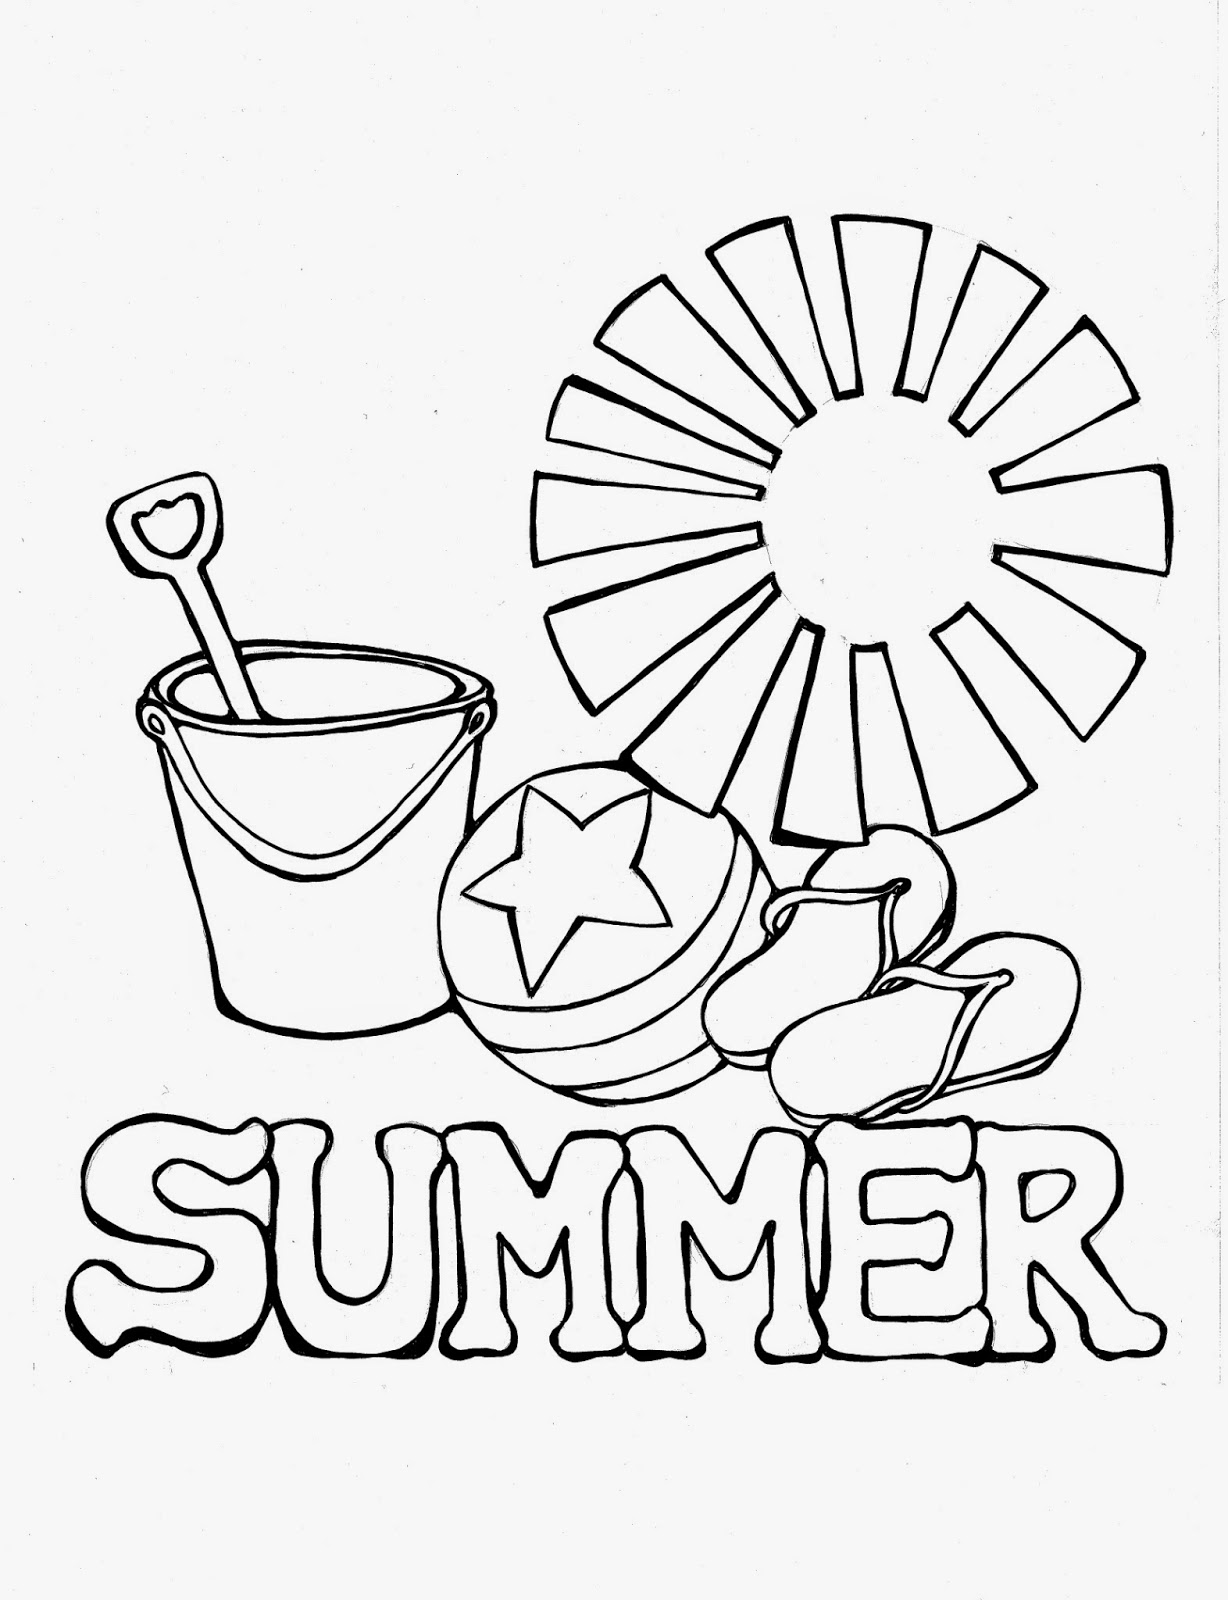 summertime coloring pages - photo#4